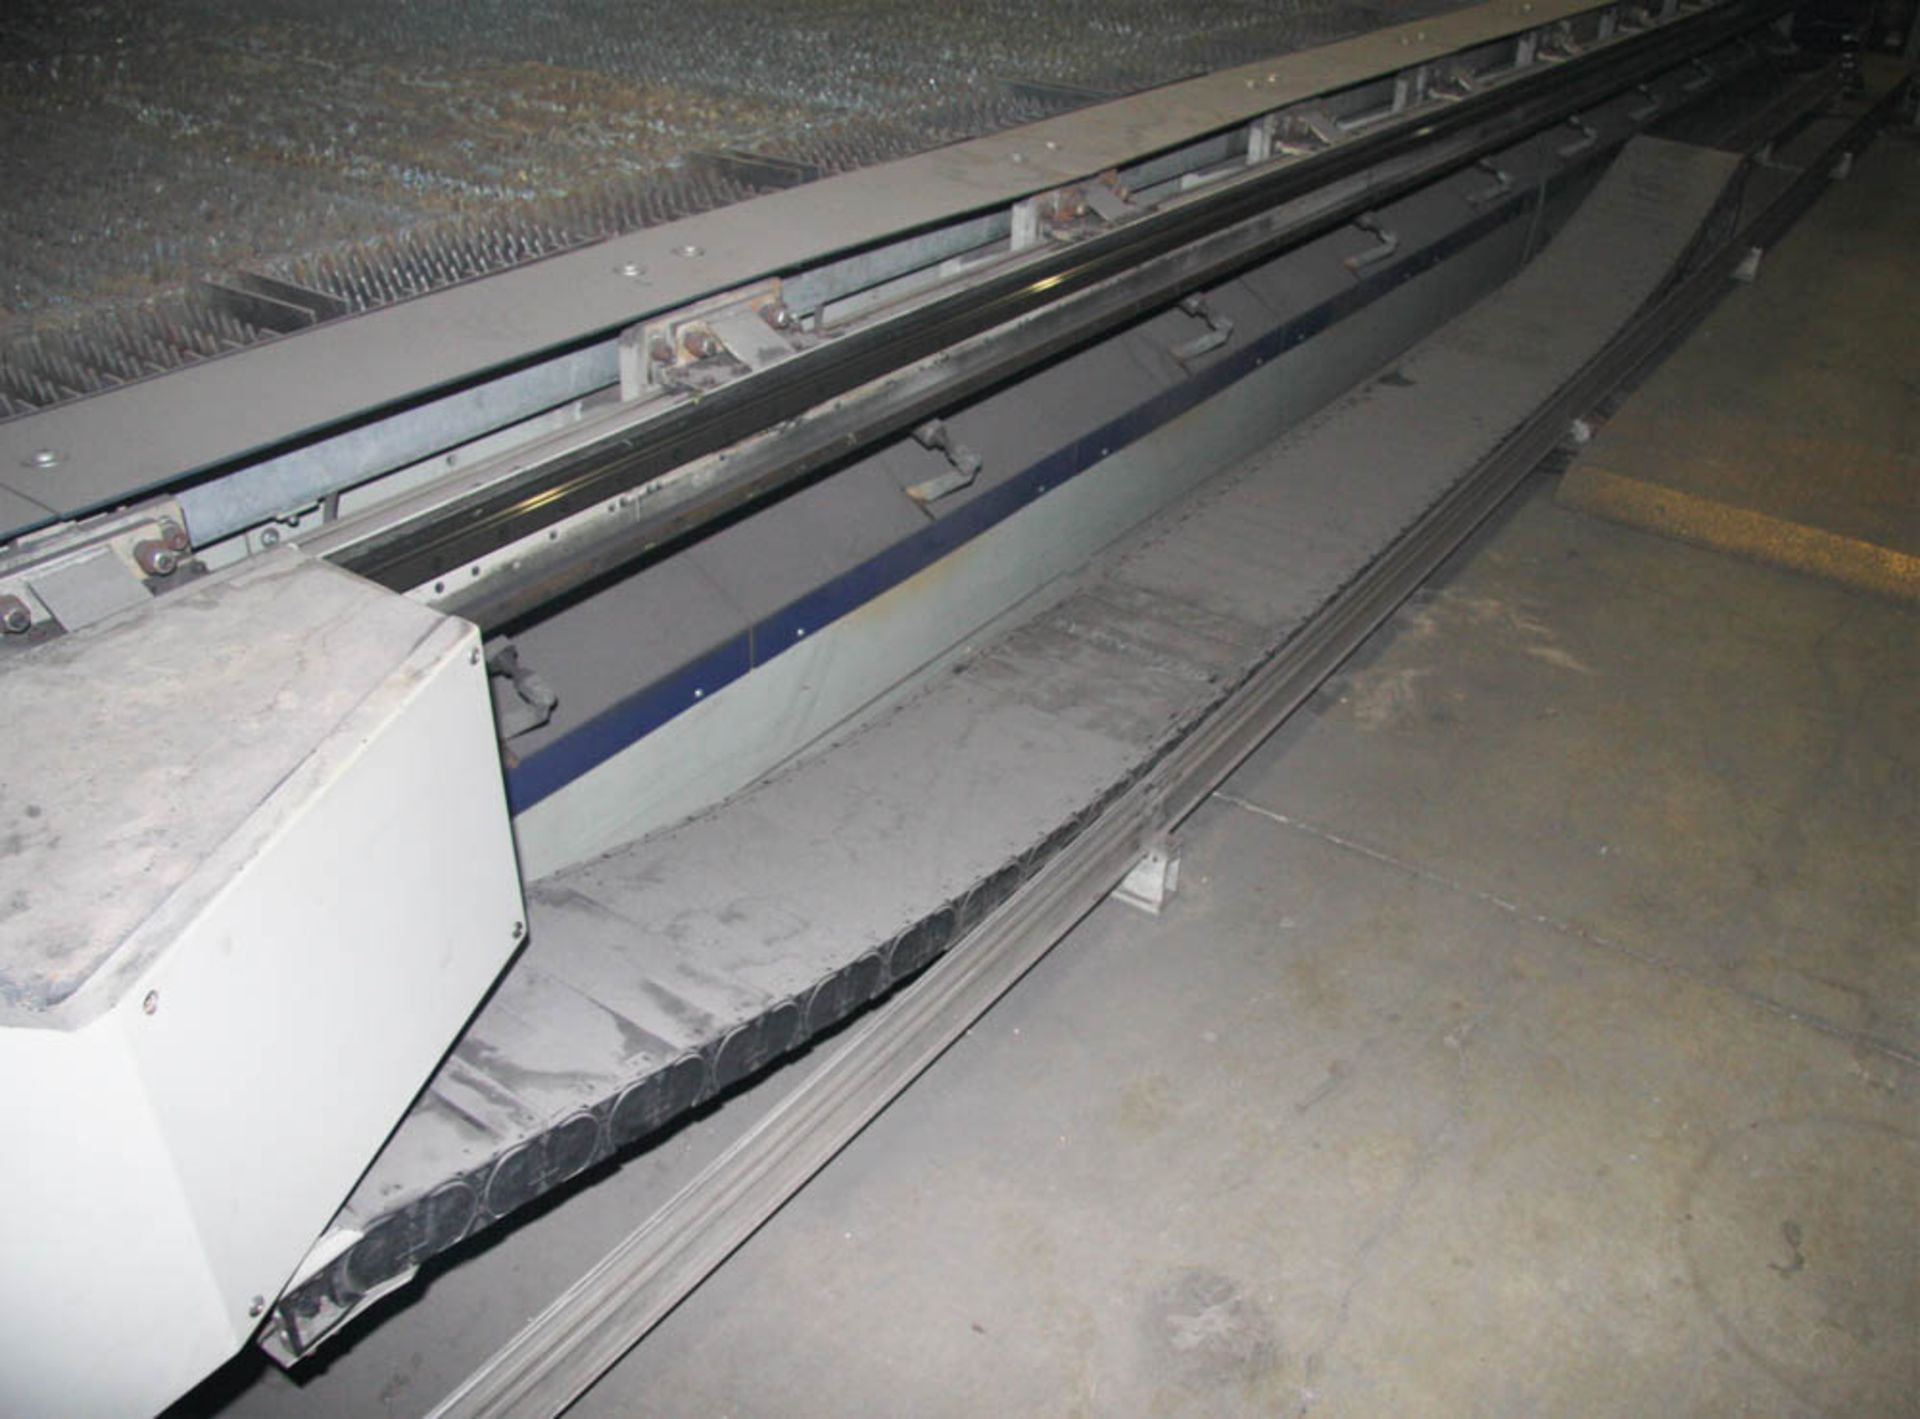 """2015 MESSER MDL. MMEXCEL HI-DEF CNC PLASMA CUTTING TABLE, [2] HEADS, 140"""" X 324"""" OVERALL TABLE SIZE, - Image 17 of 20"""